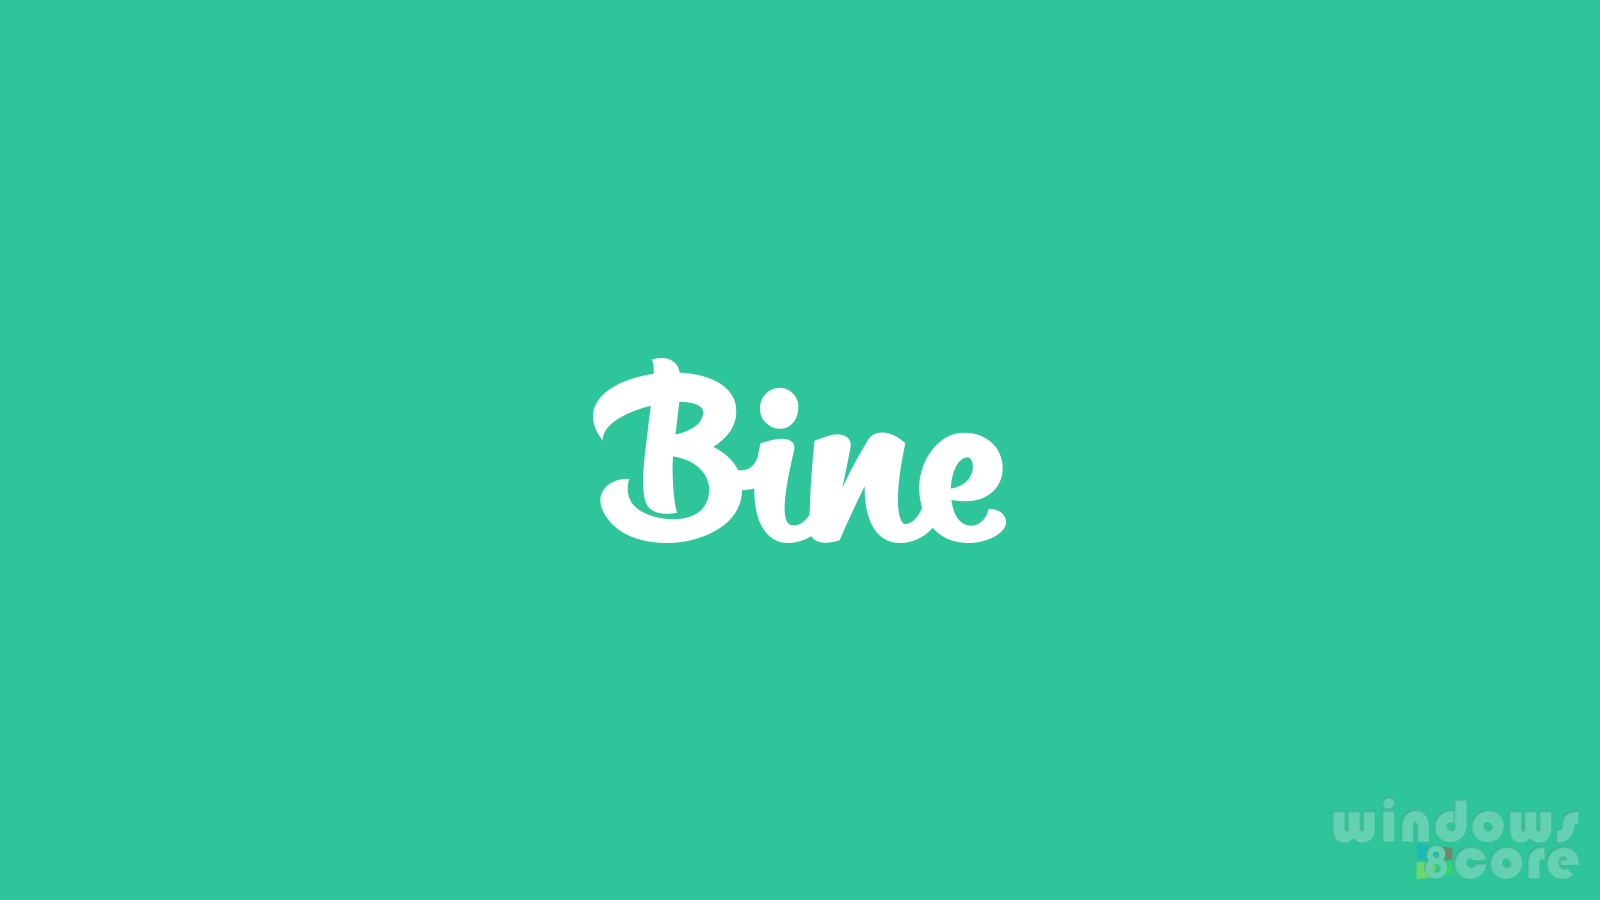 Bine app for windows 81rt lets you create and post vine videos bine app for windows 81rt lets you create and post vine videos for free ccuart Gallery